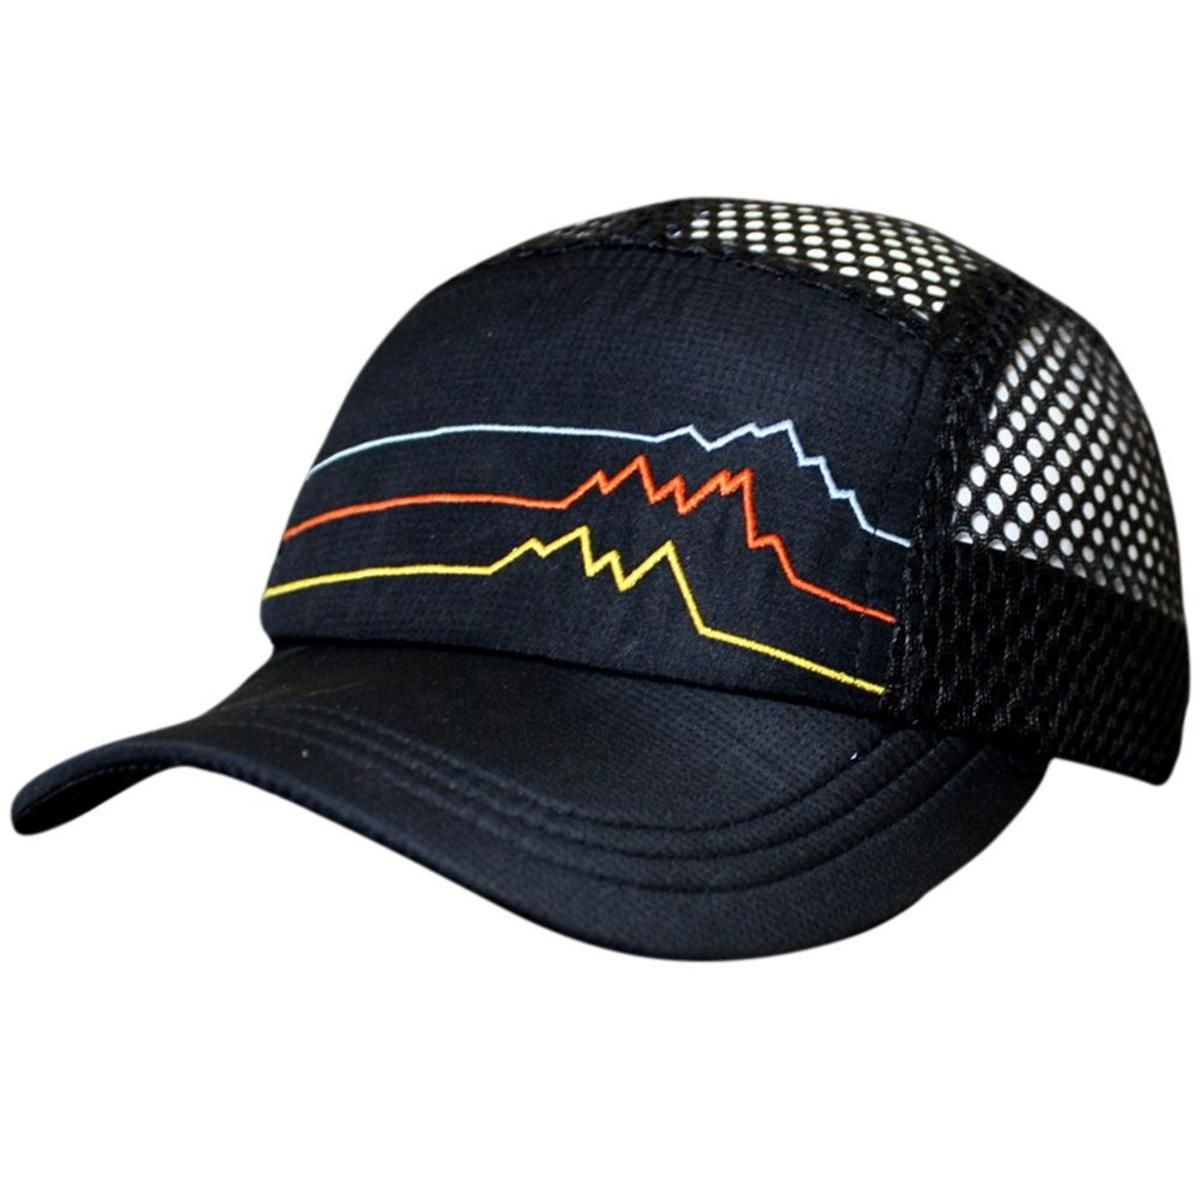 809c75c2a57 Headsweats The Crusher Hat - Mountains - The Warming Store